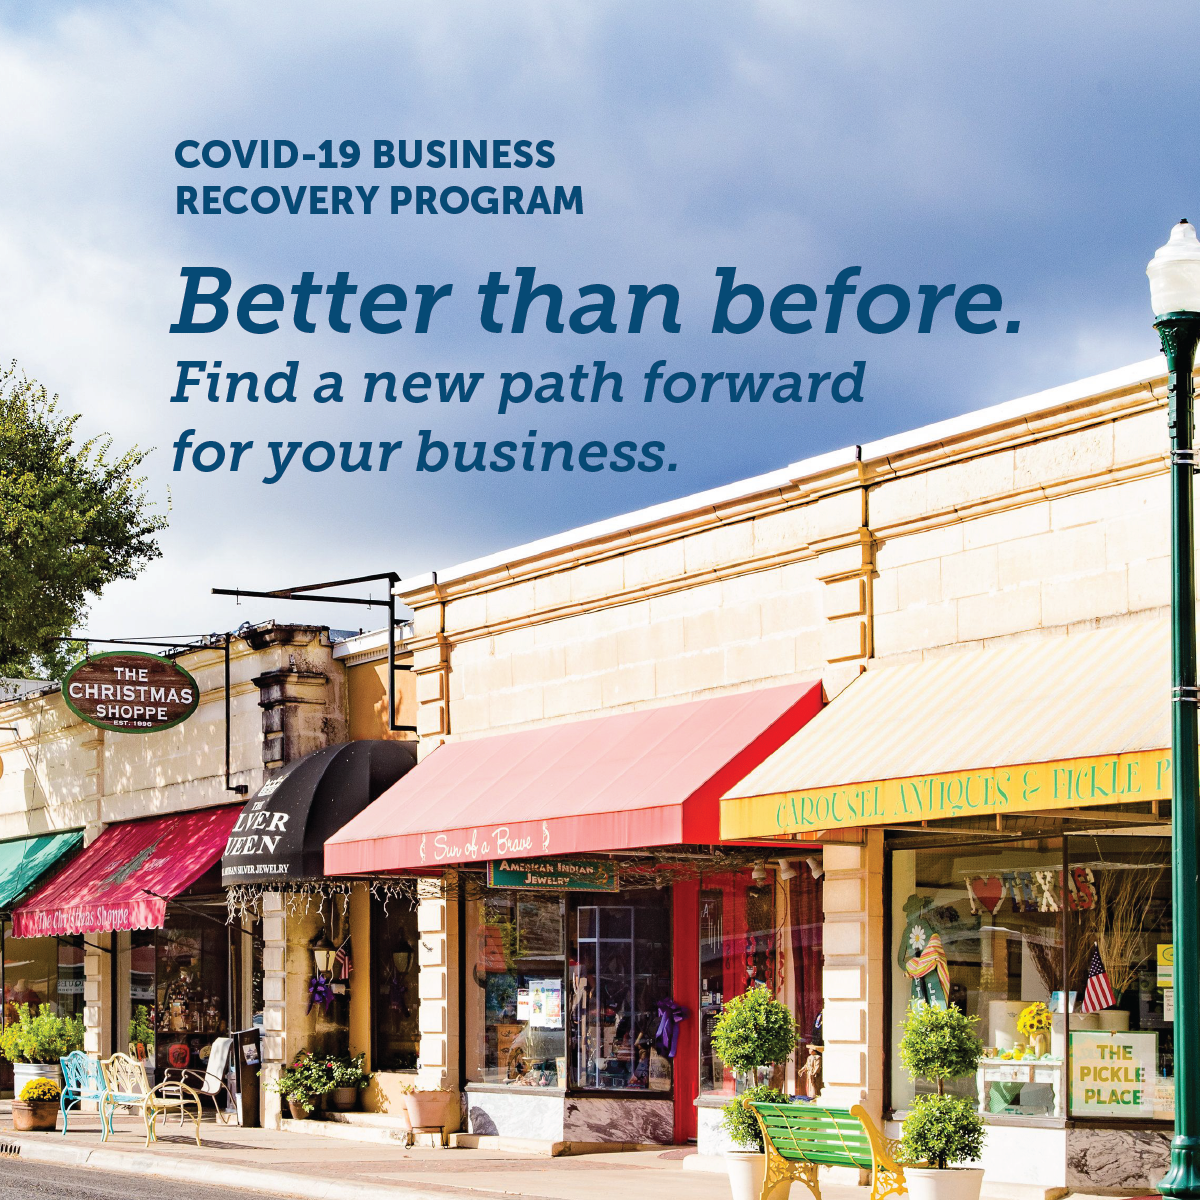 Covid-19 Business Recover Program